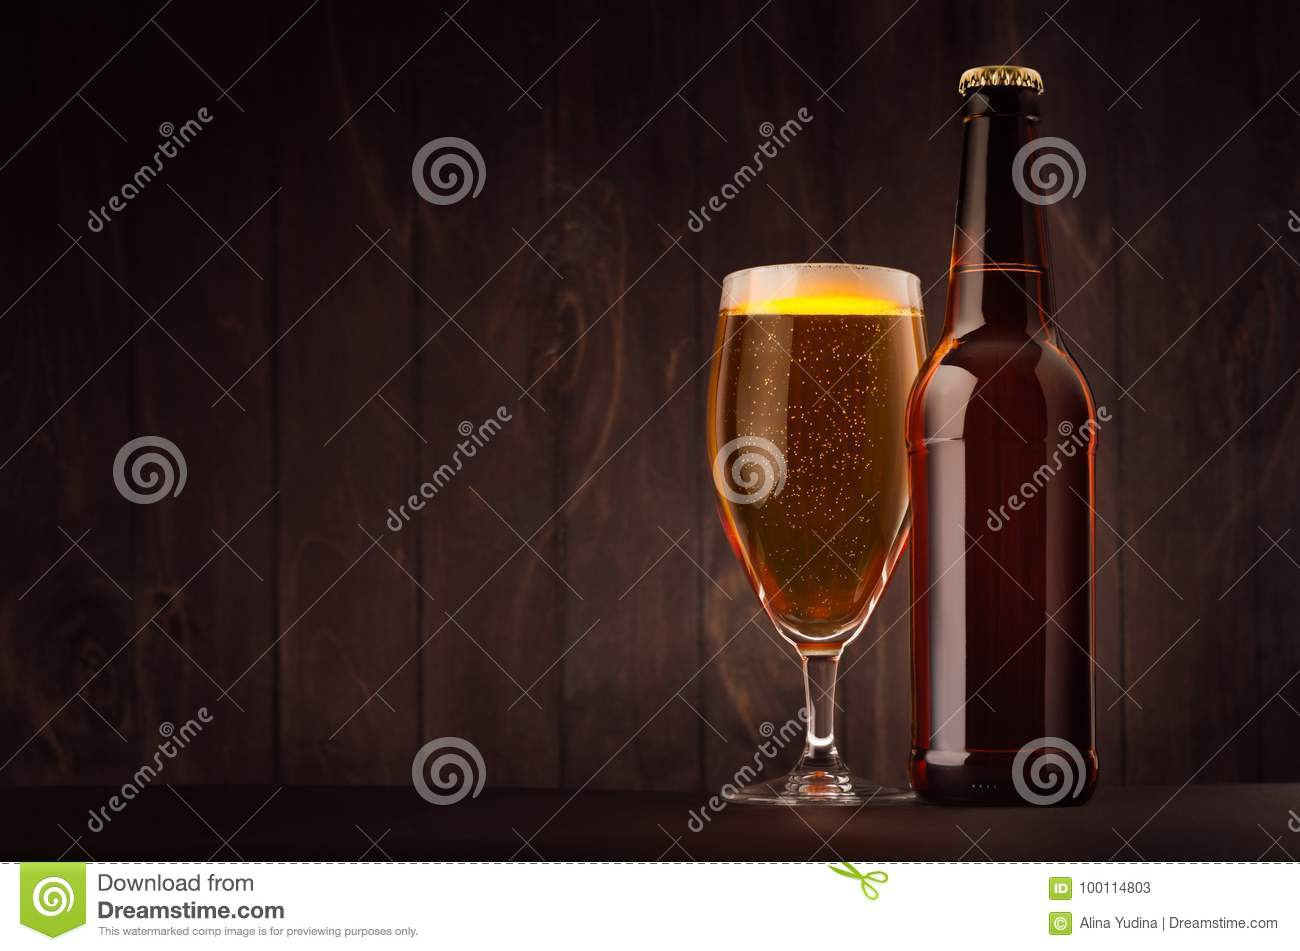 Brown beer bottle and glass tulip with golden lager on dark wood board, copy space, mock up.